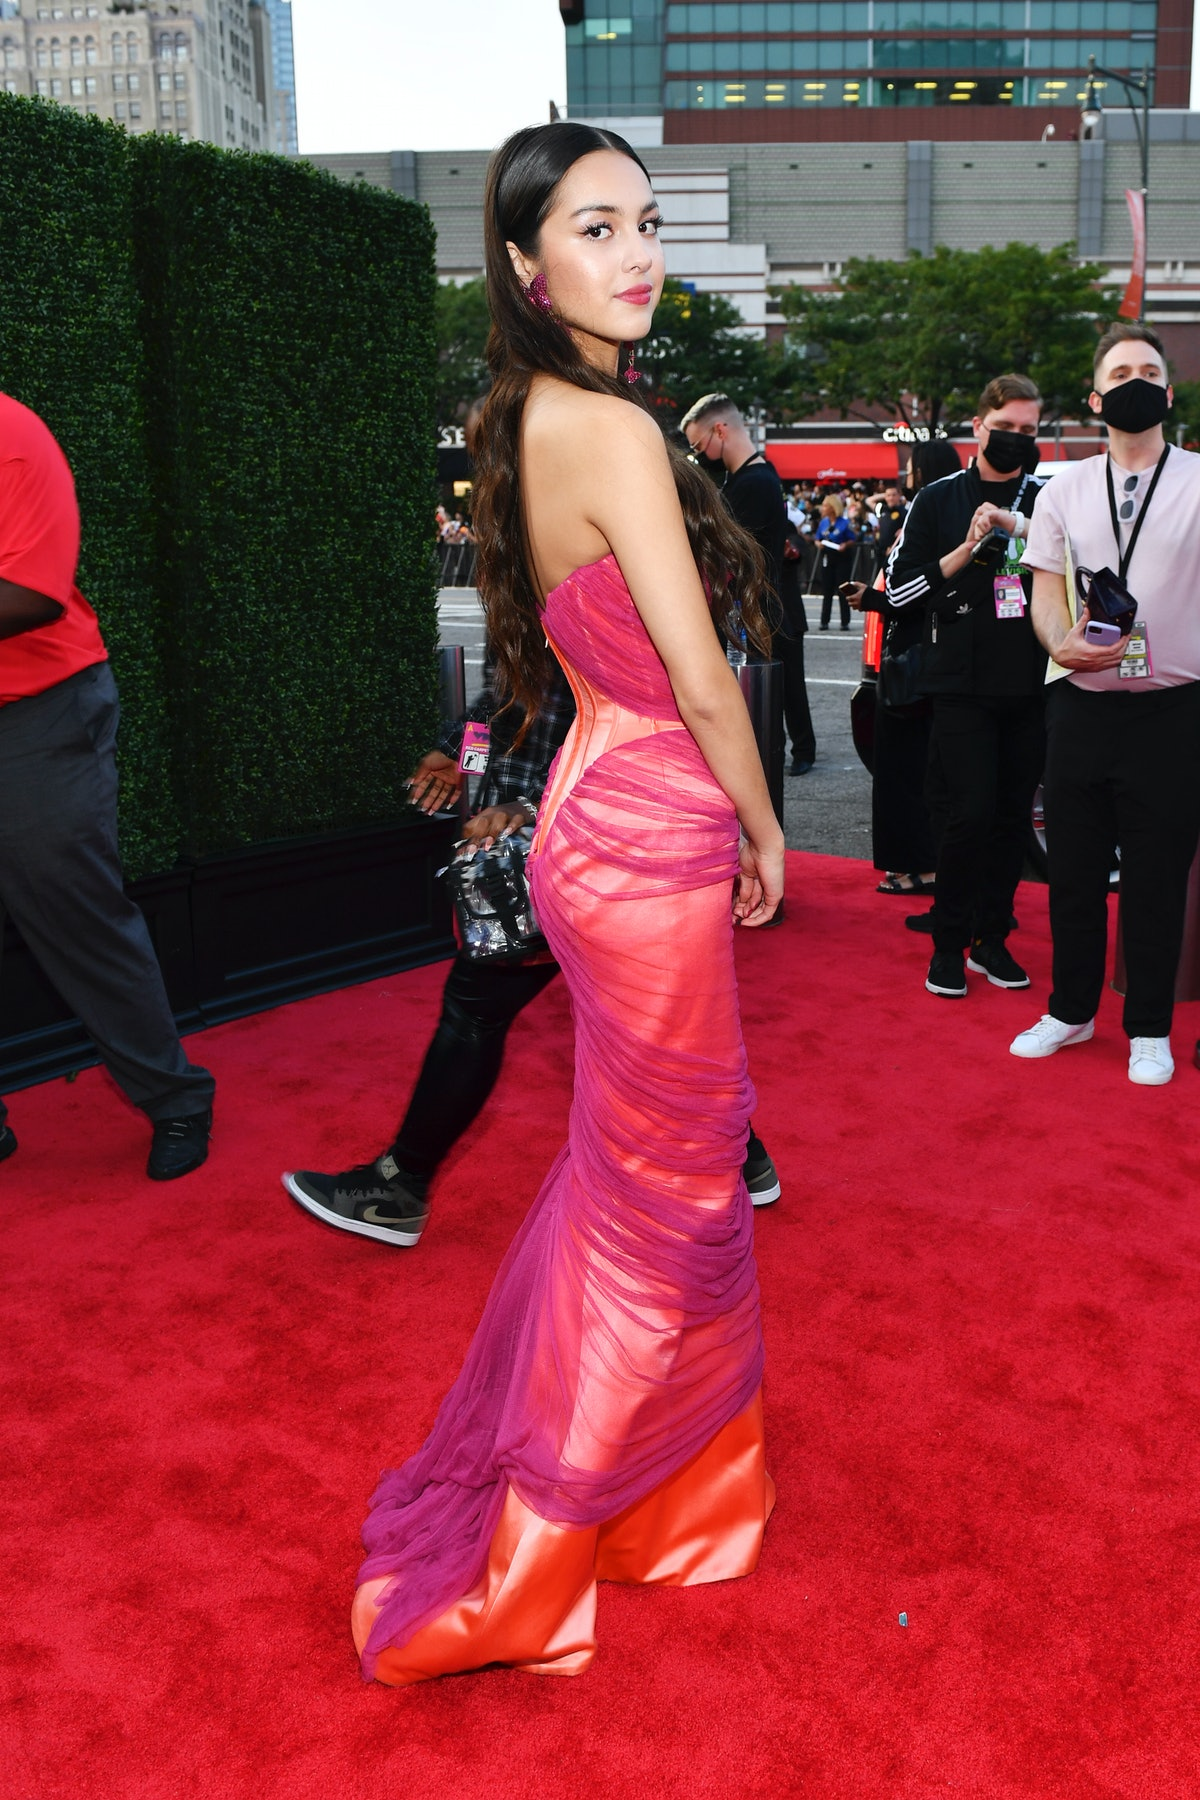 Olivia Rodrigo at the 2021 VMAs in a pink-and-purple gown.